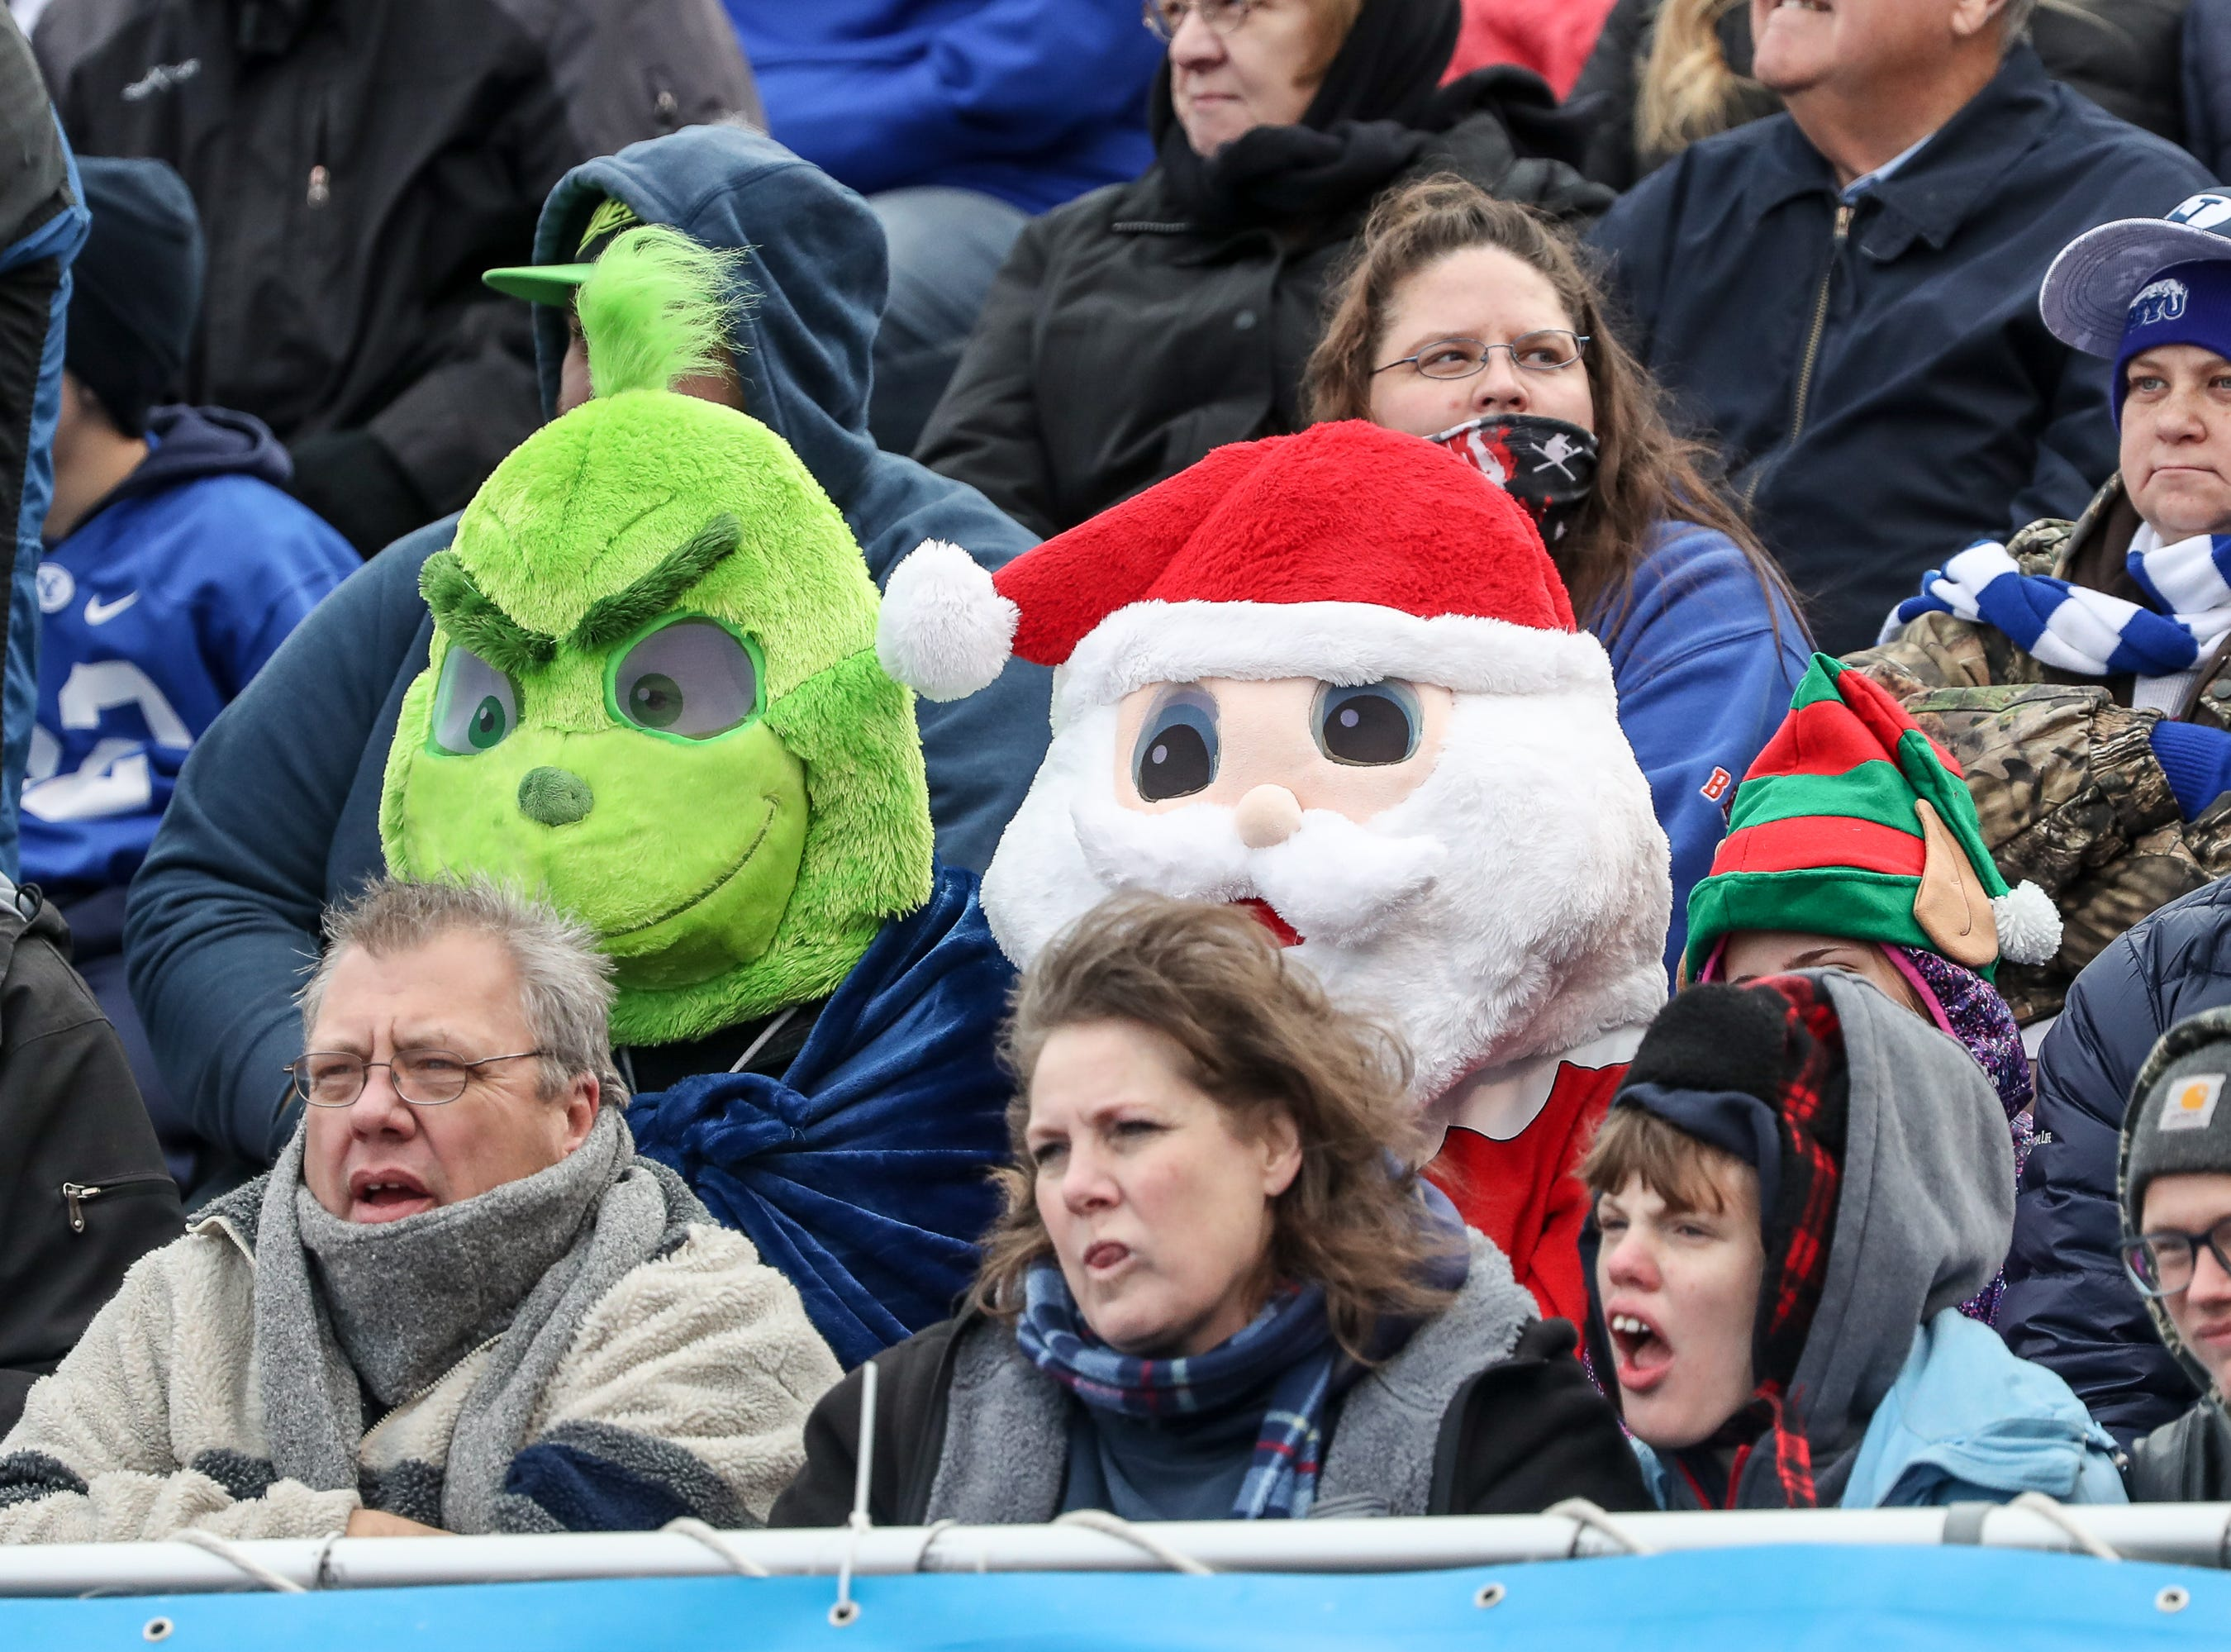 The Grinch and Santa Claus enjoy first half action between the BYU Cougars and the Western Michigan Broncos at the Famous Idaho Potato Bowl on Dec. 21, 2018 at Albertsons Stadium in Boise, Idaho.